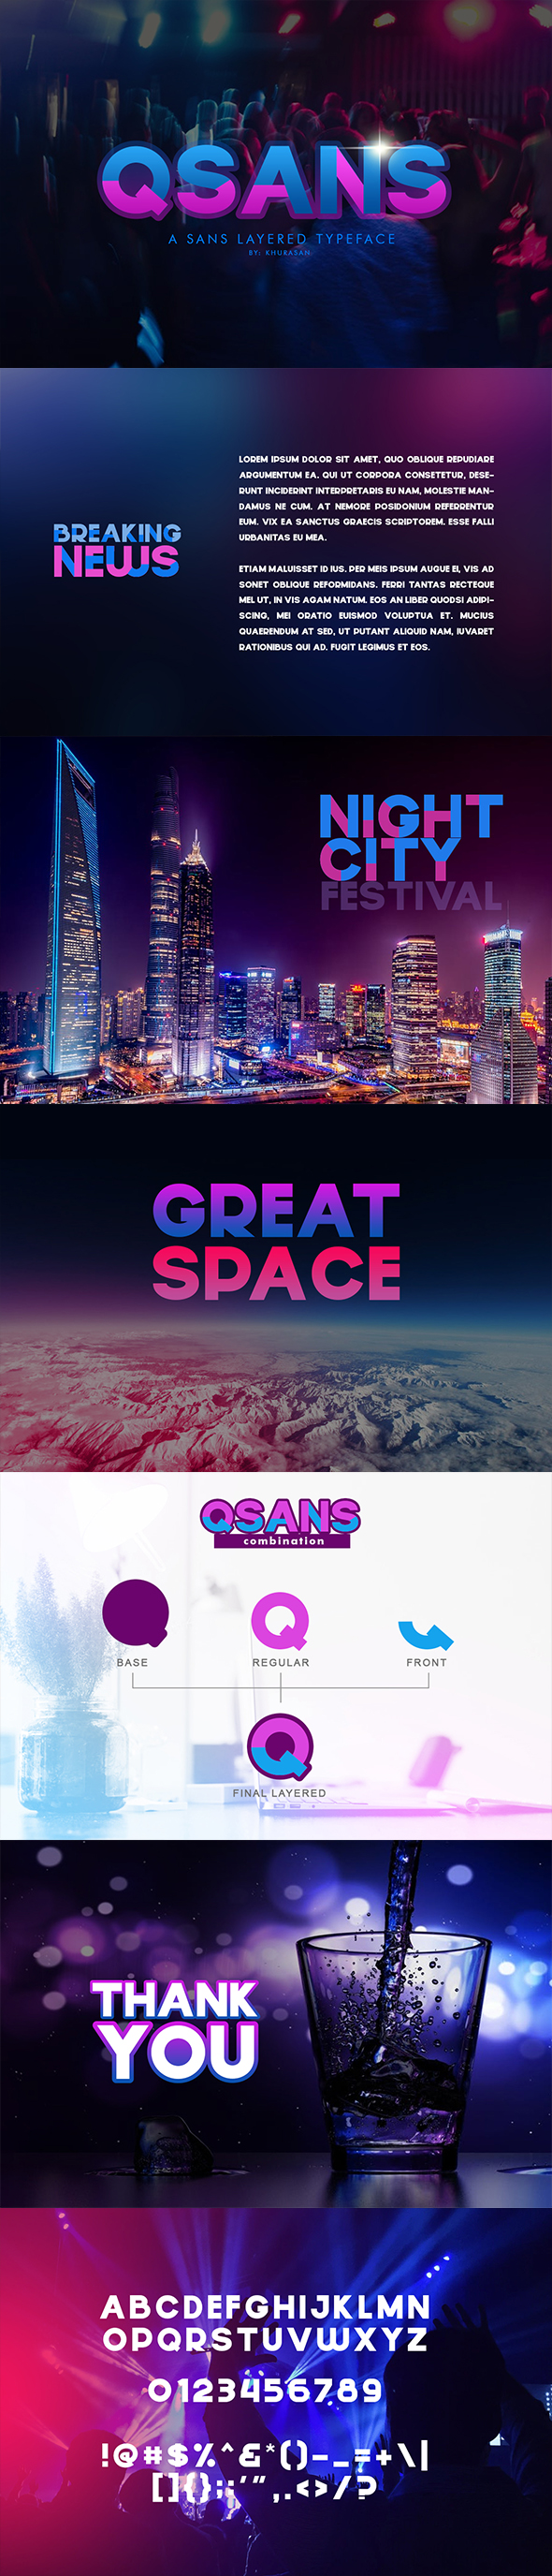 Qsans Layered Typeface